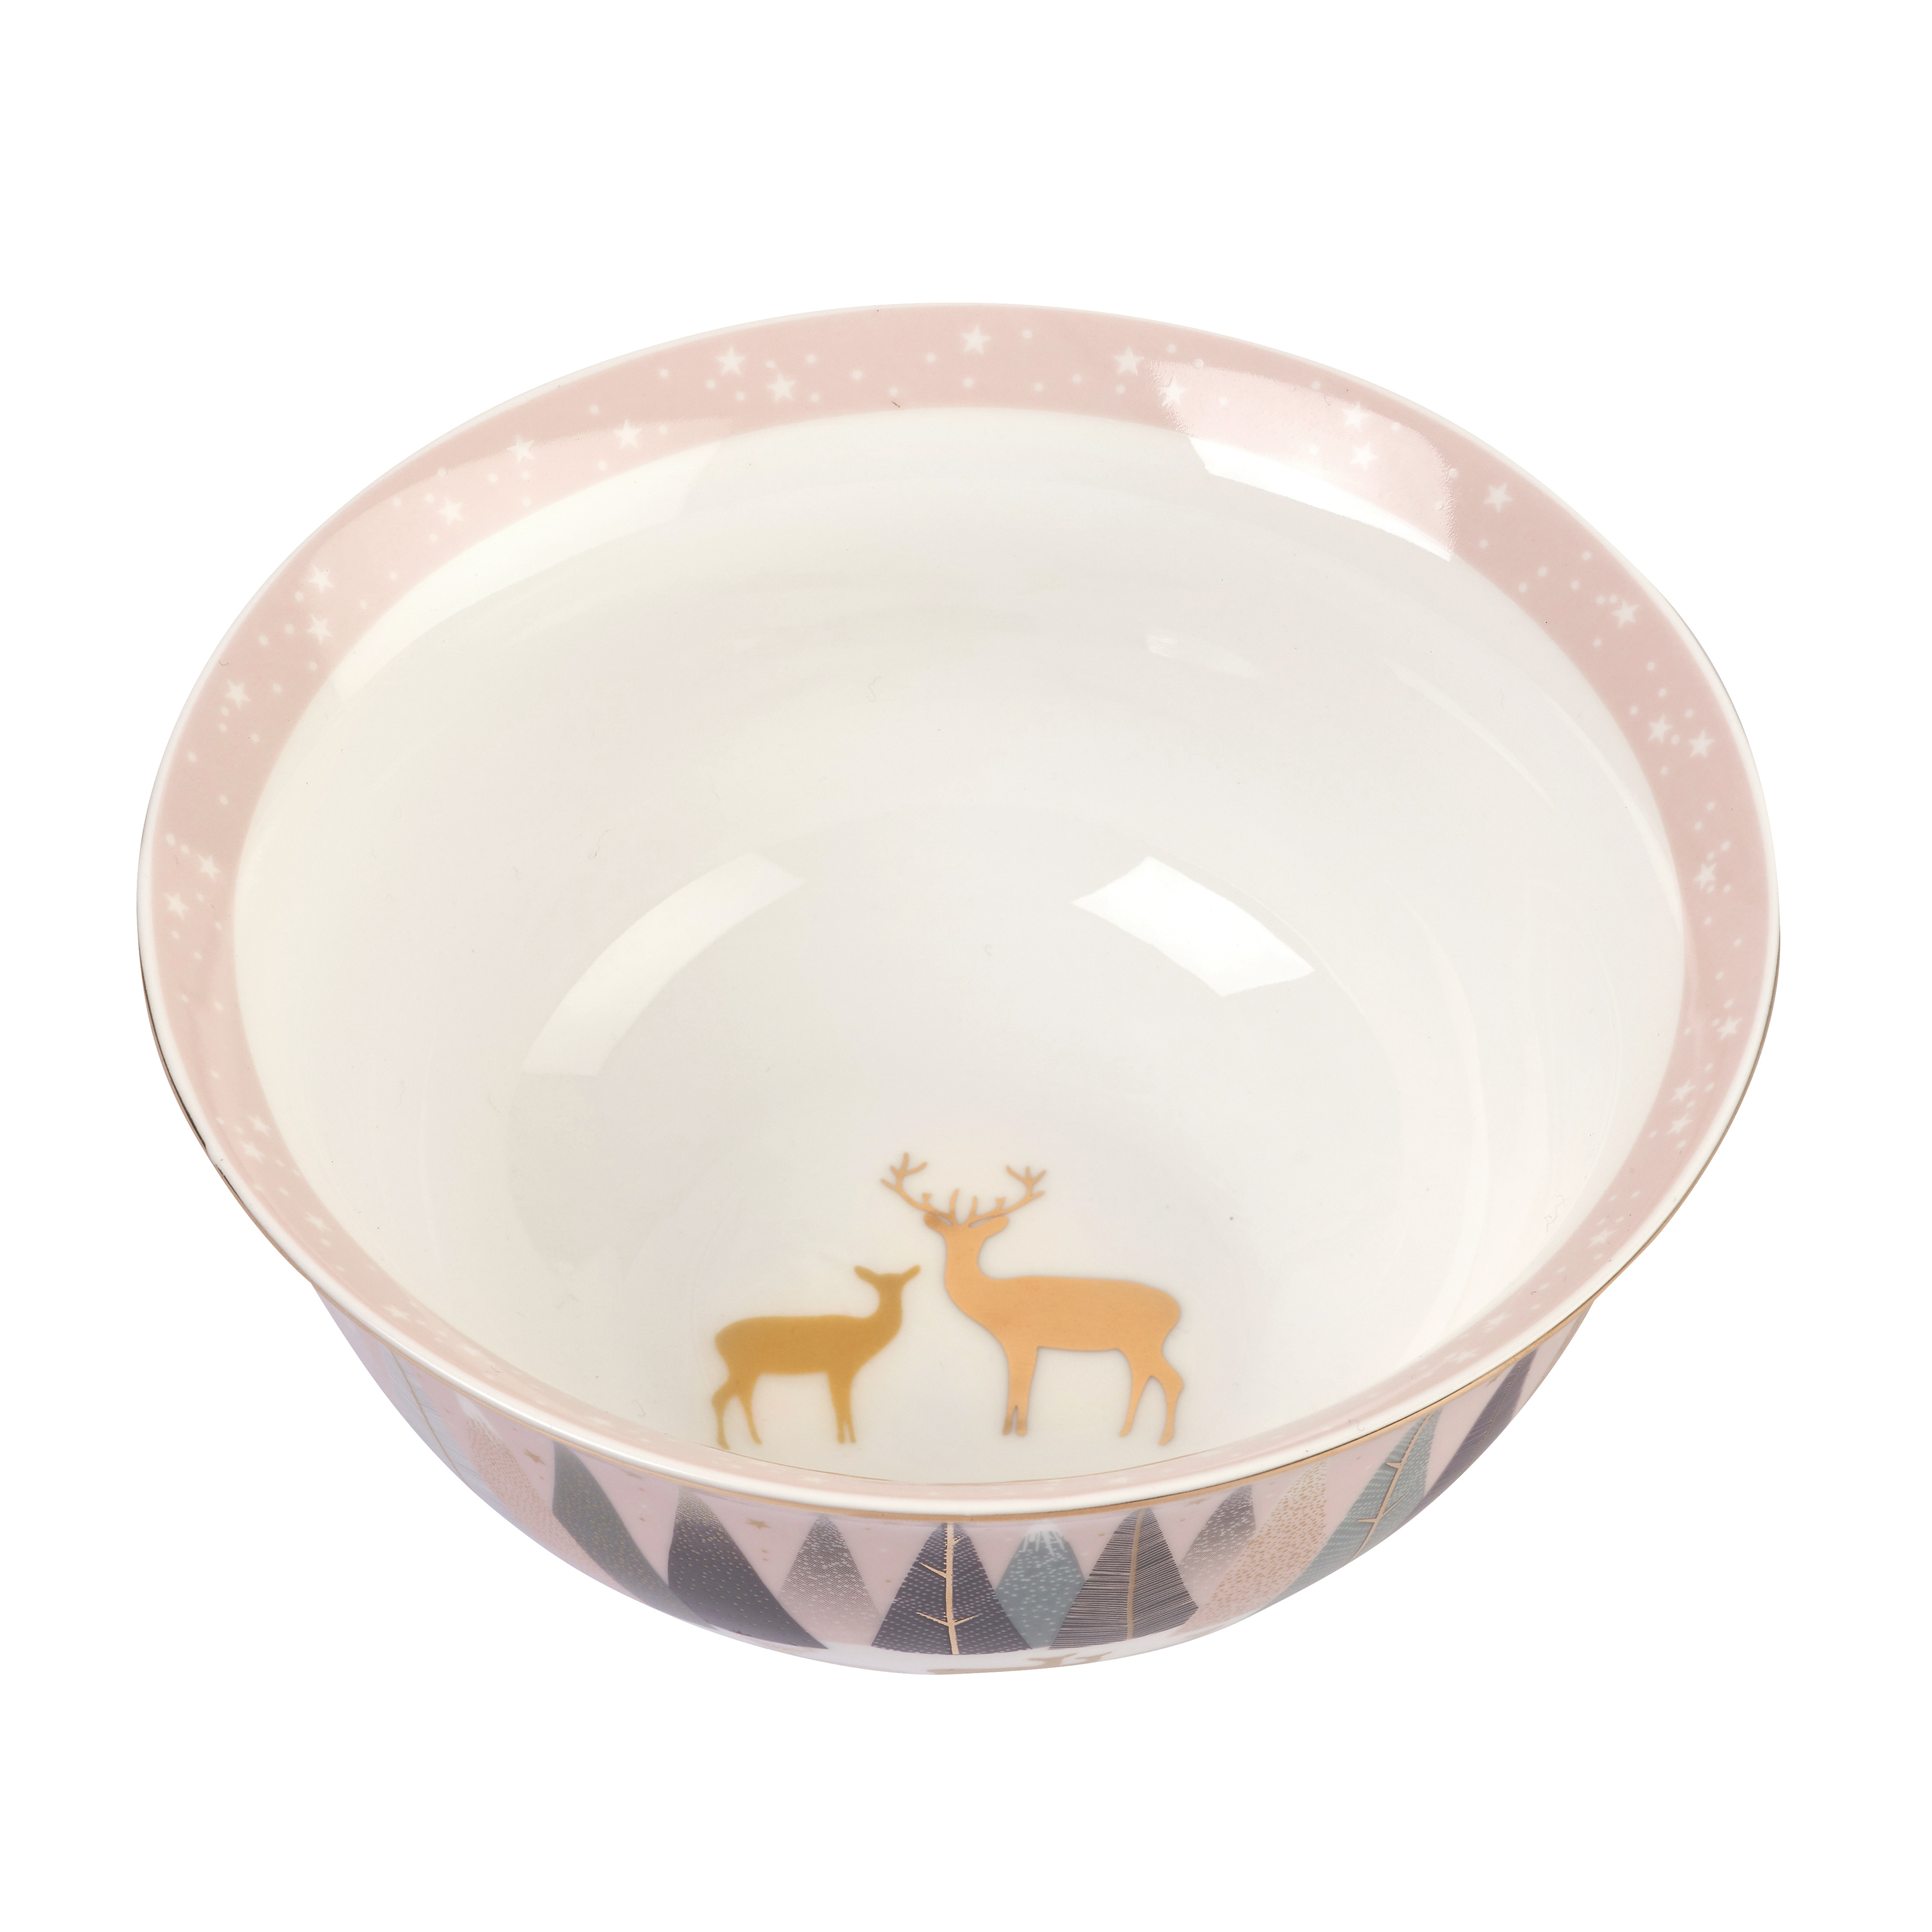 Sara Miller London for Portmeirion Frosted Pines 6 Inch Candy Bowl image number 1